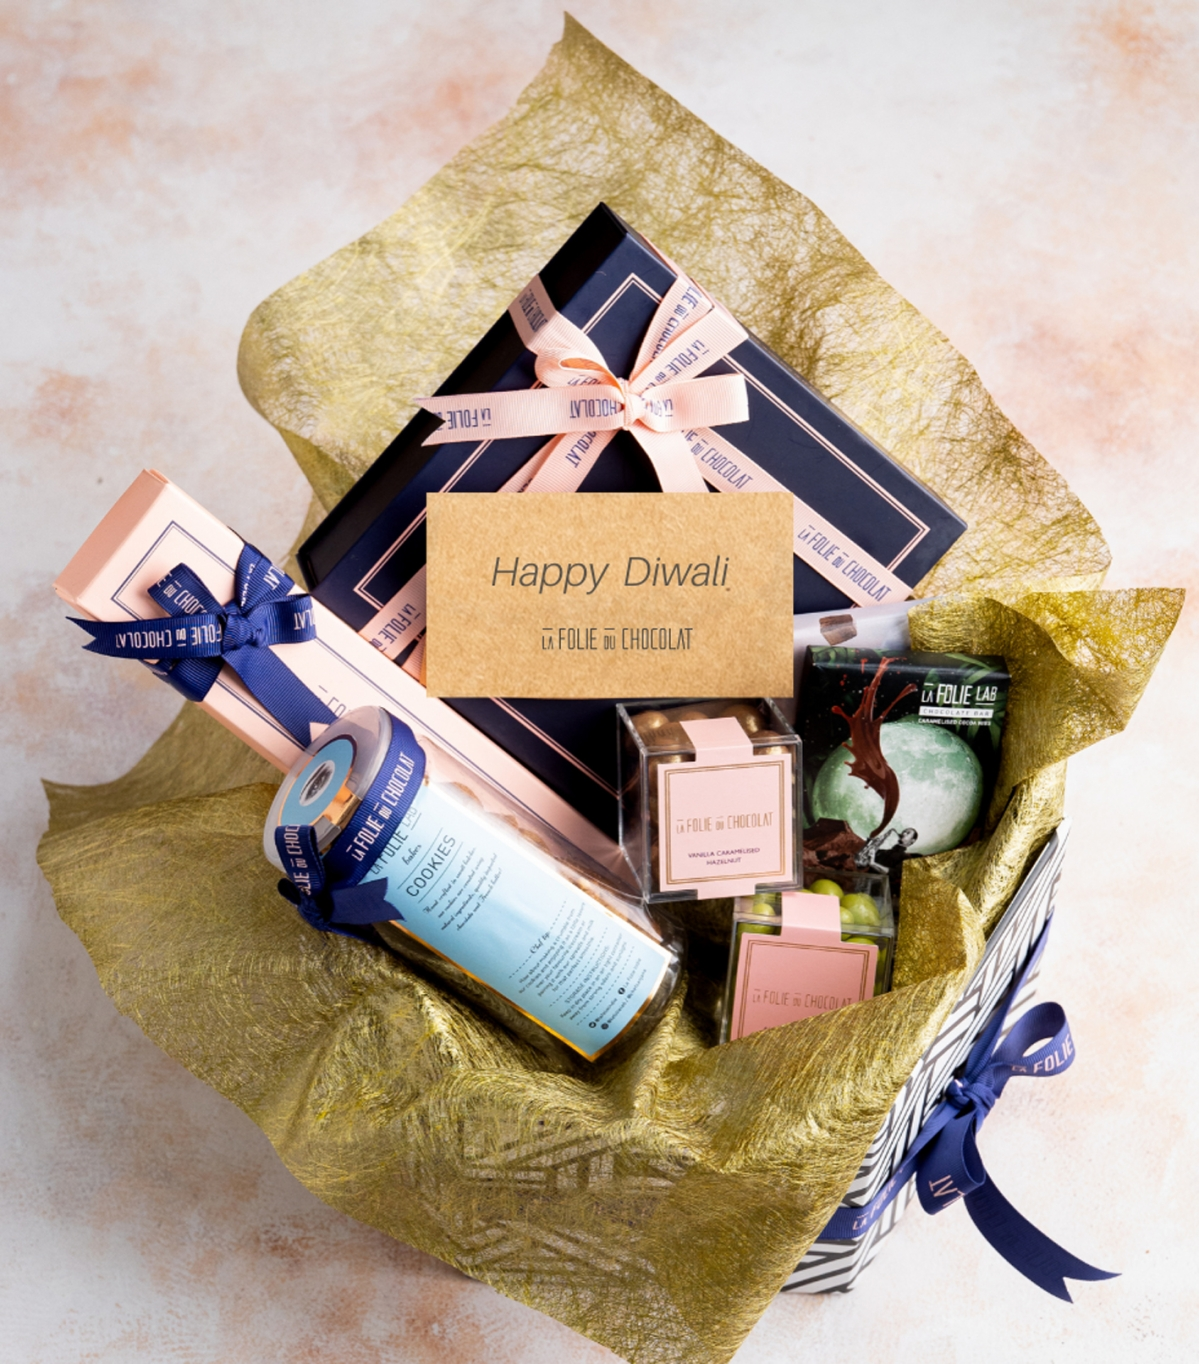 Hampers of happiness